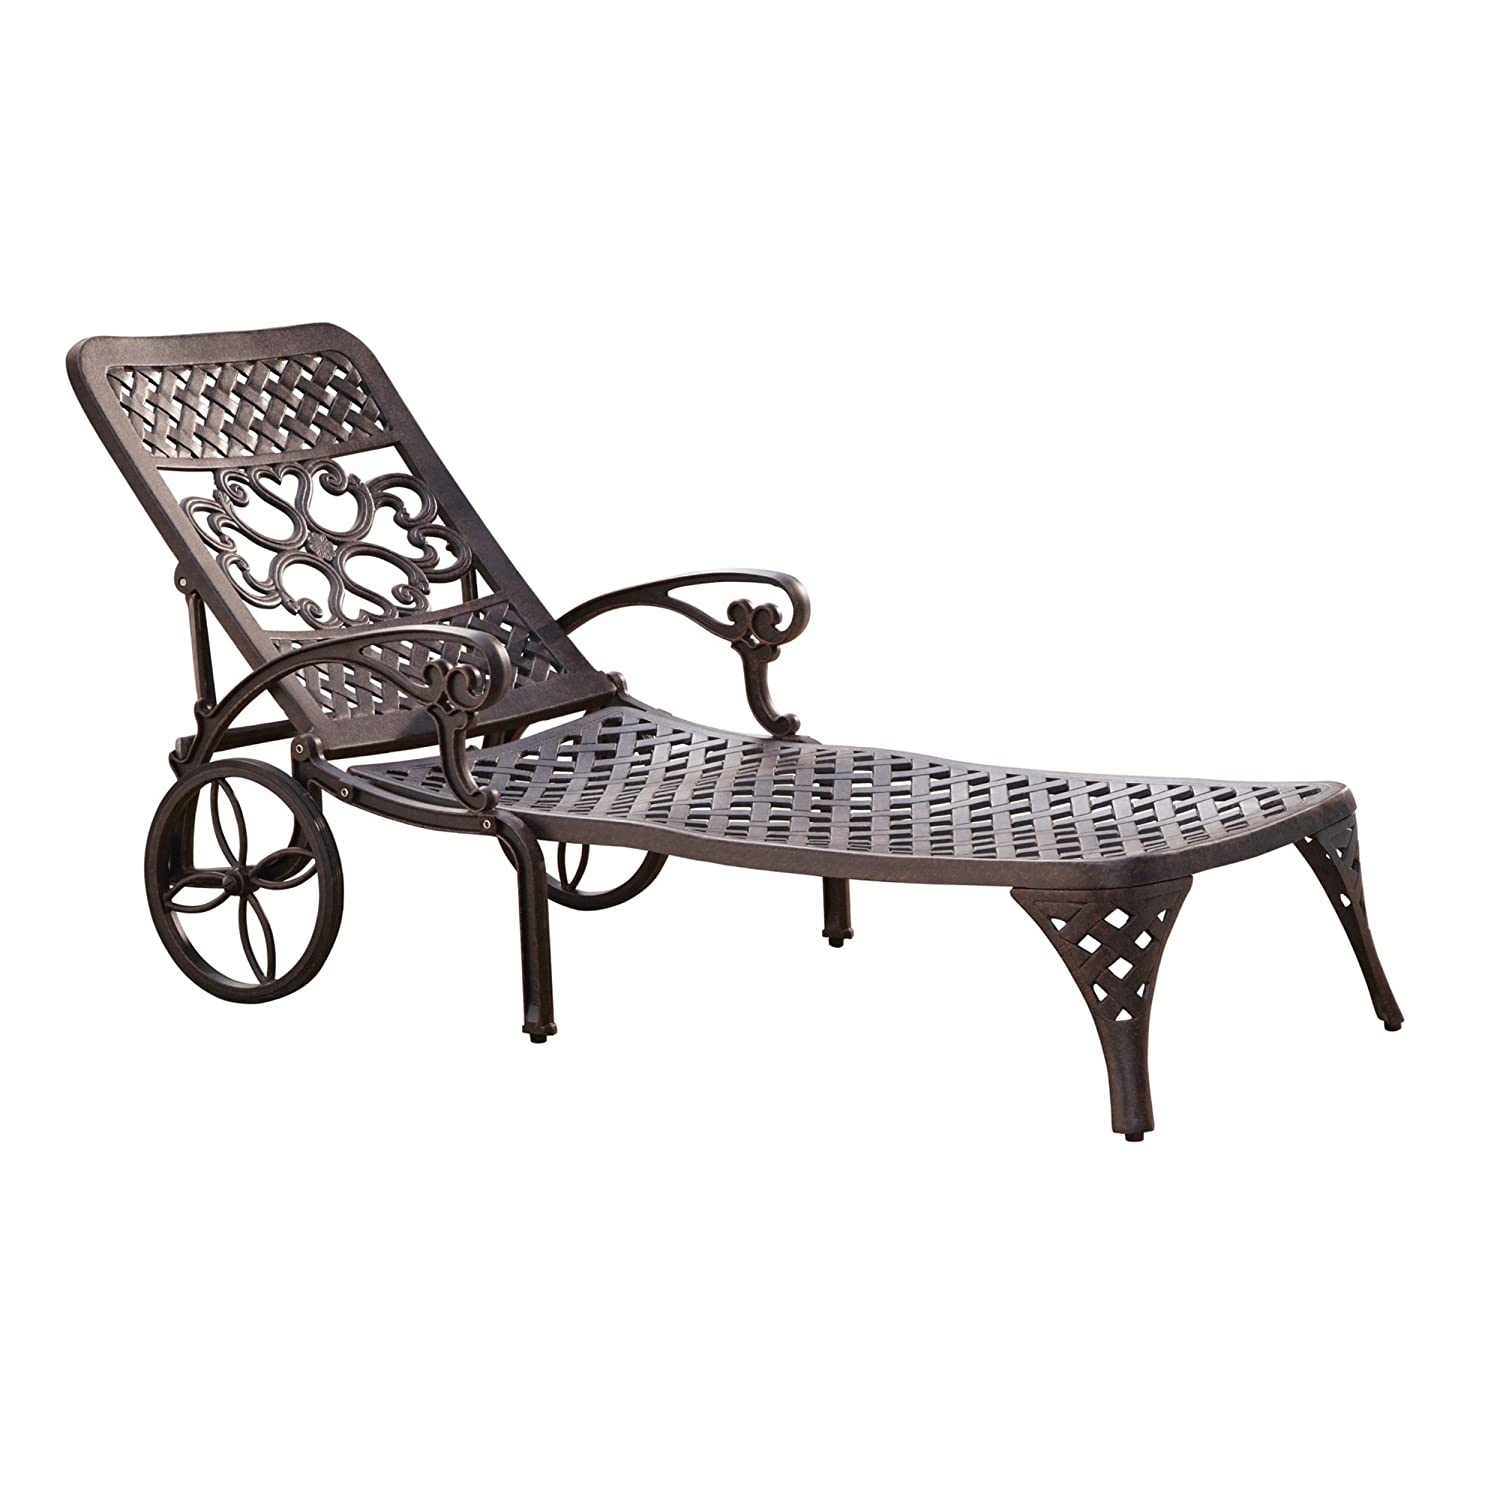 amazoncom home styles biscayne chaise lounge chair black patio lounge chairs patio lawn u0026 garden